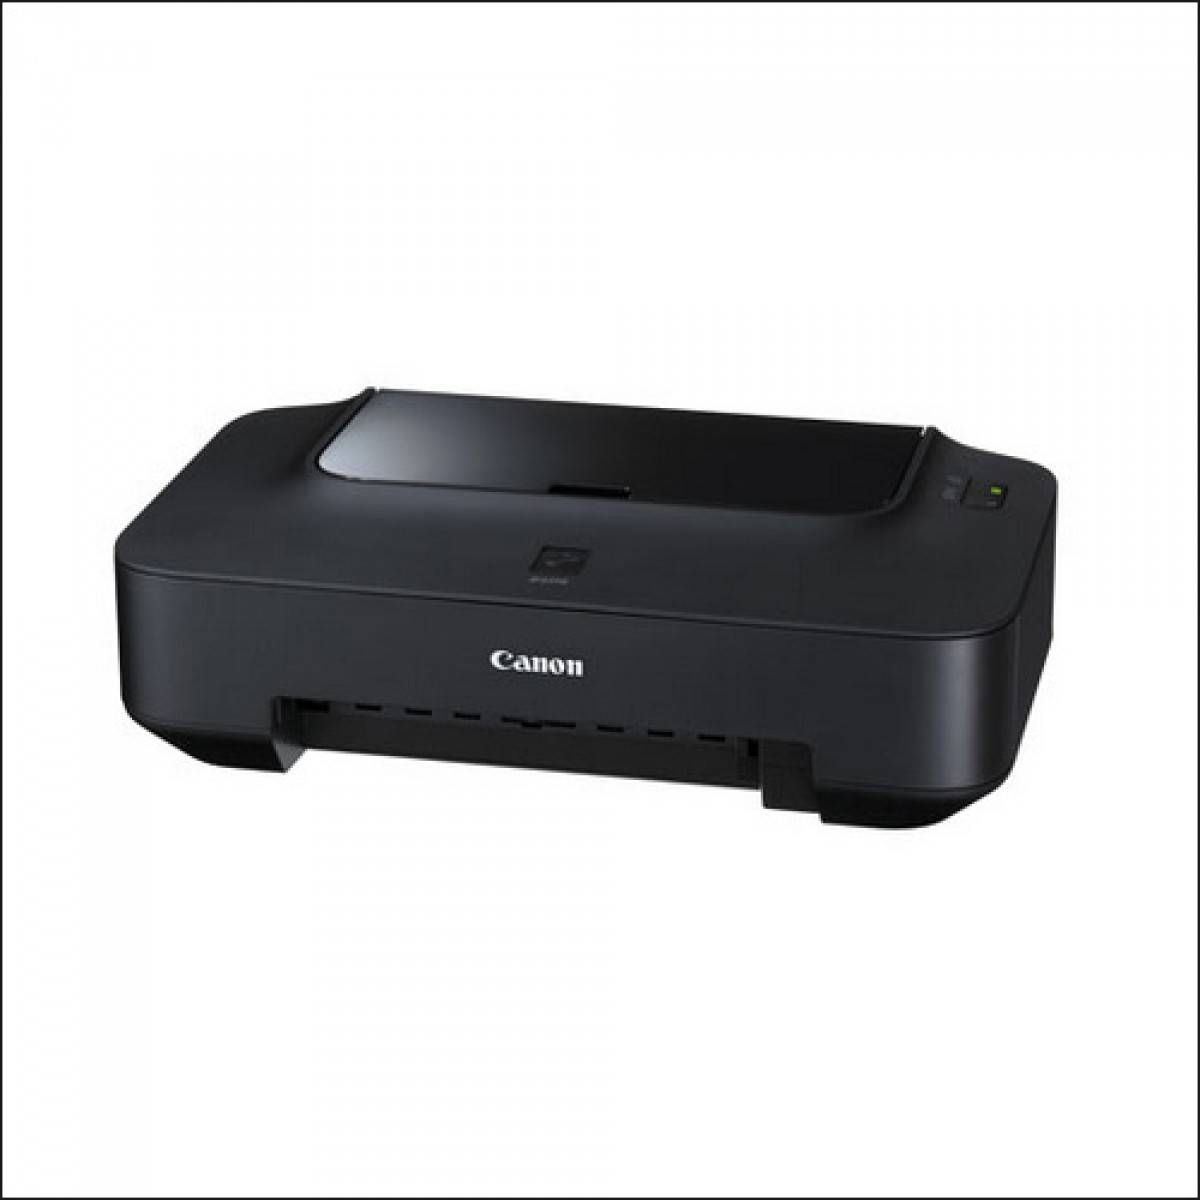 Laptop Review Reset Printer Canon Mp287 Error P10